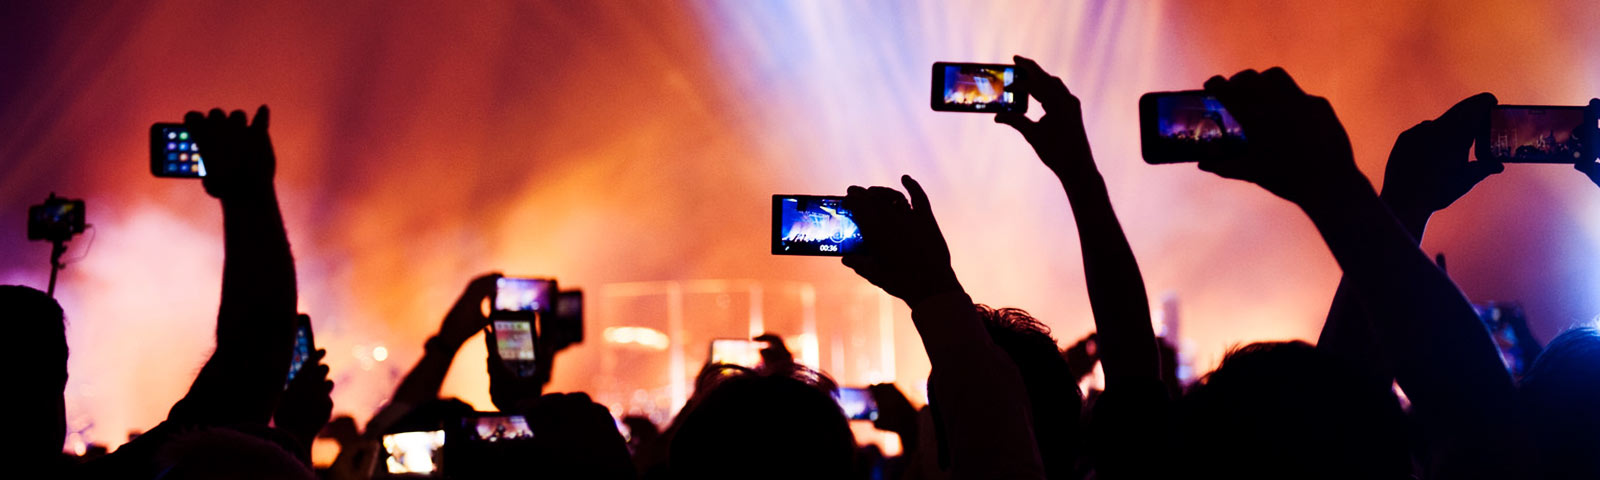 People at a concert raising their phones to record